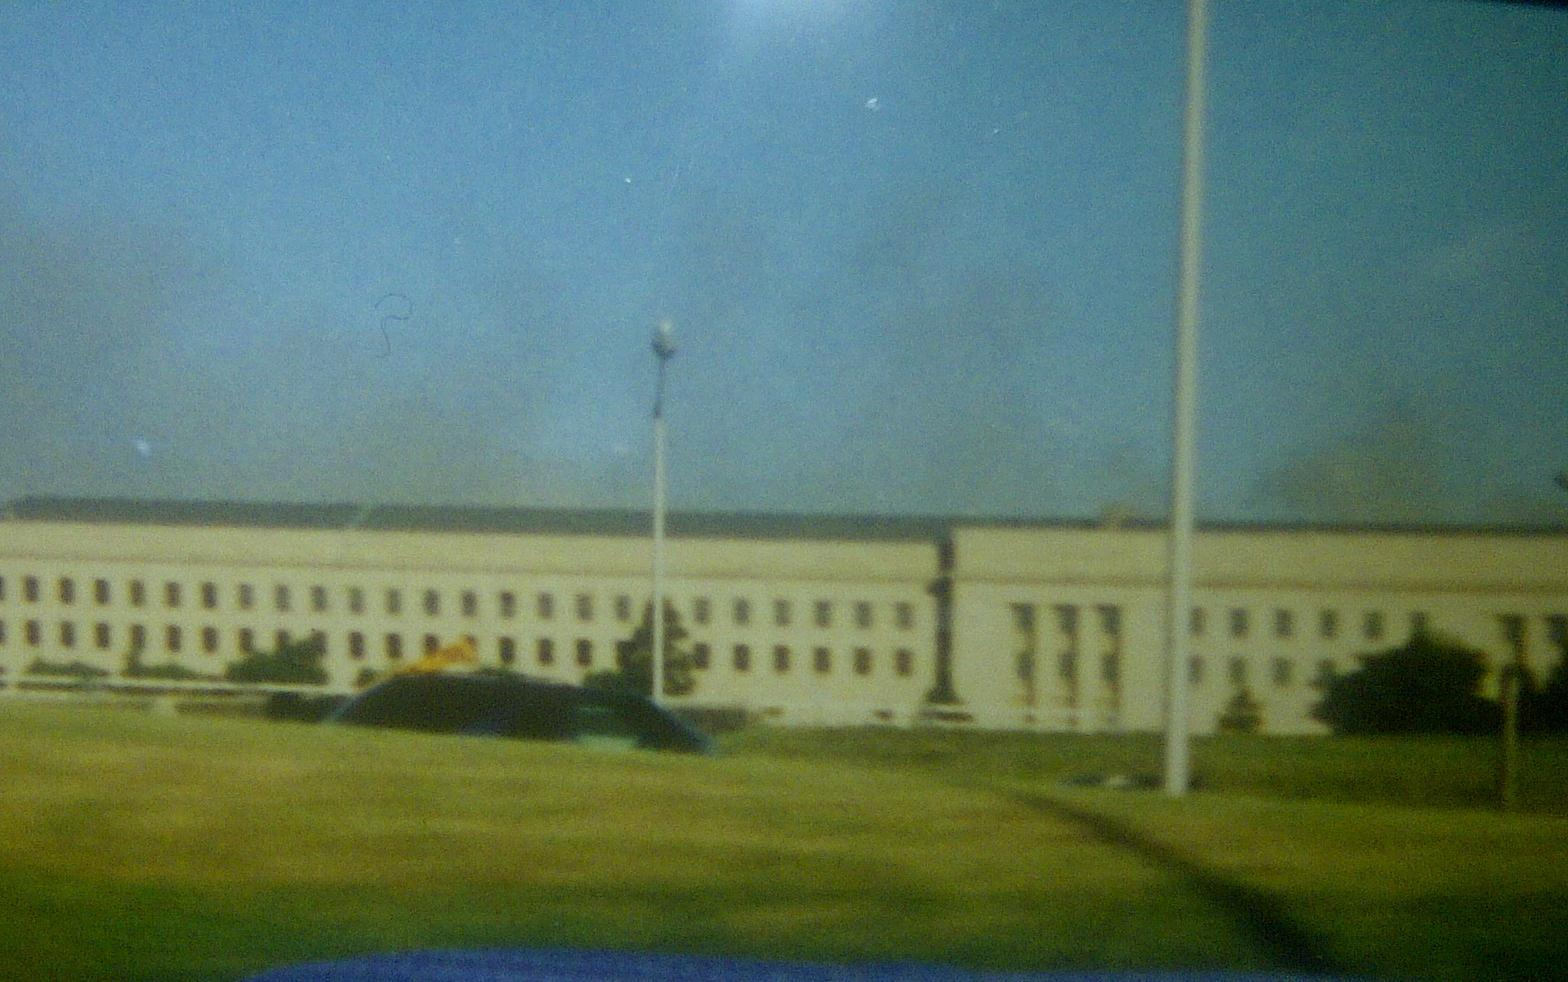 The Pentagon as smoke billows after the crash of Flight 77 Photo Credit: Melissa DeCastro